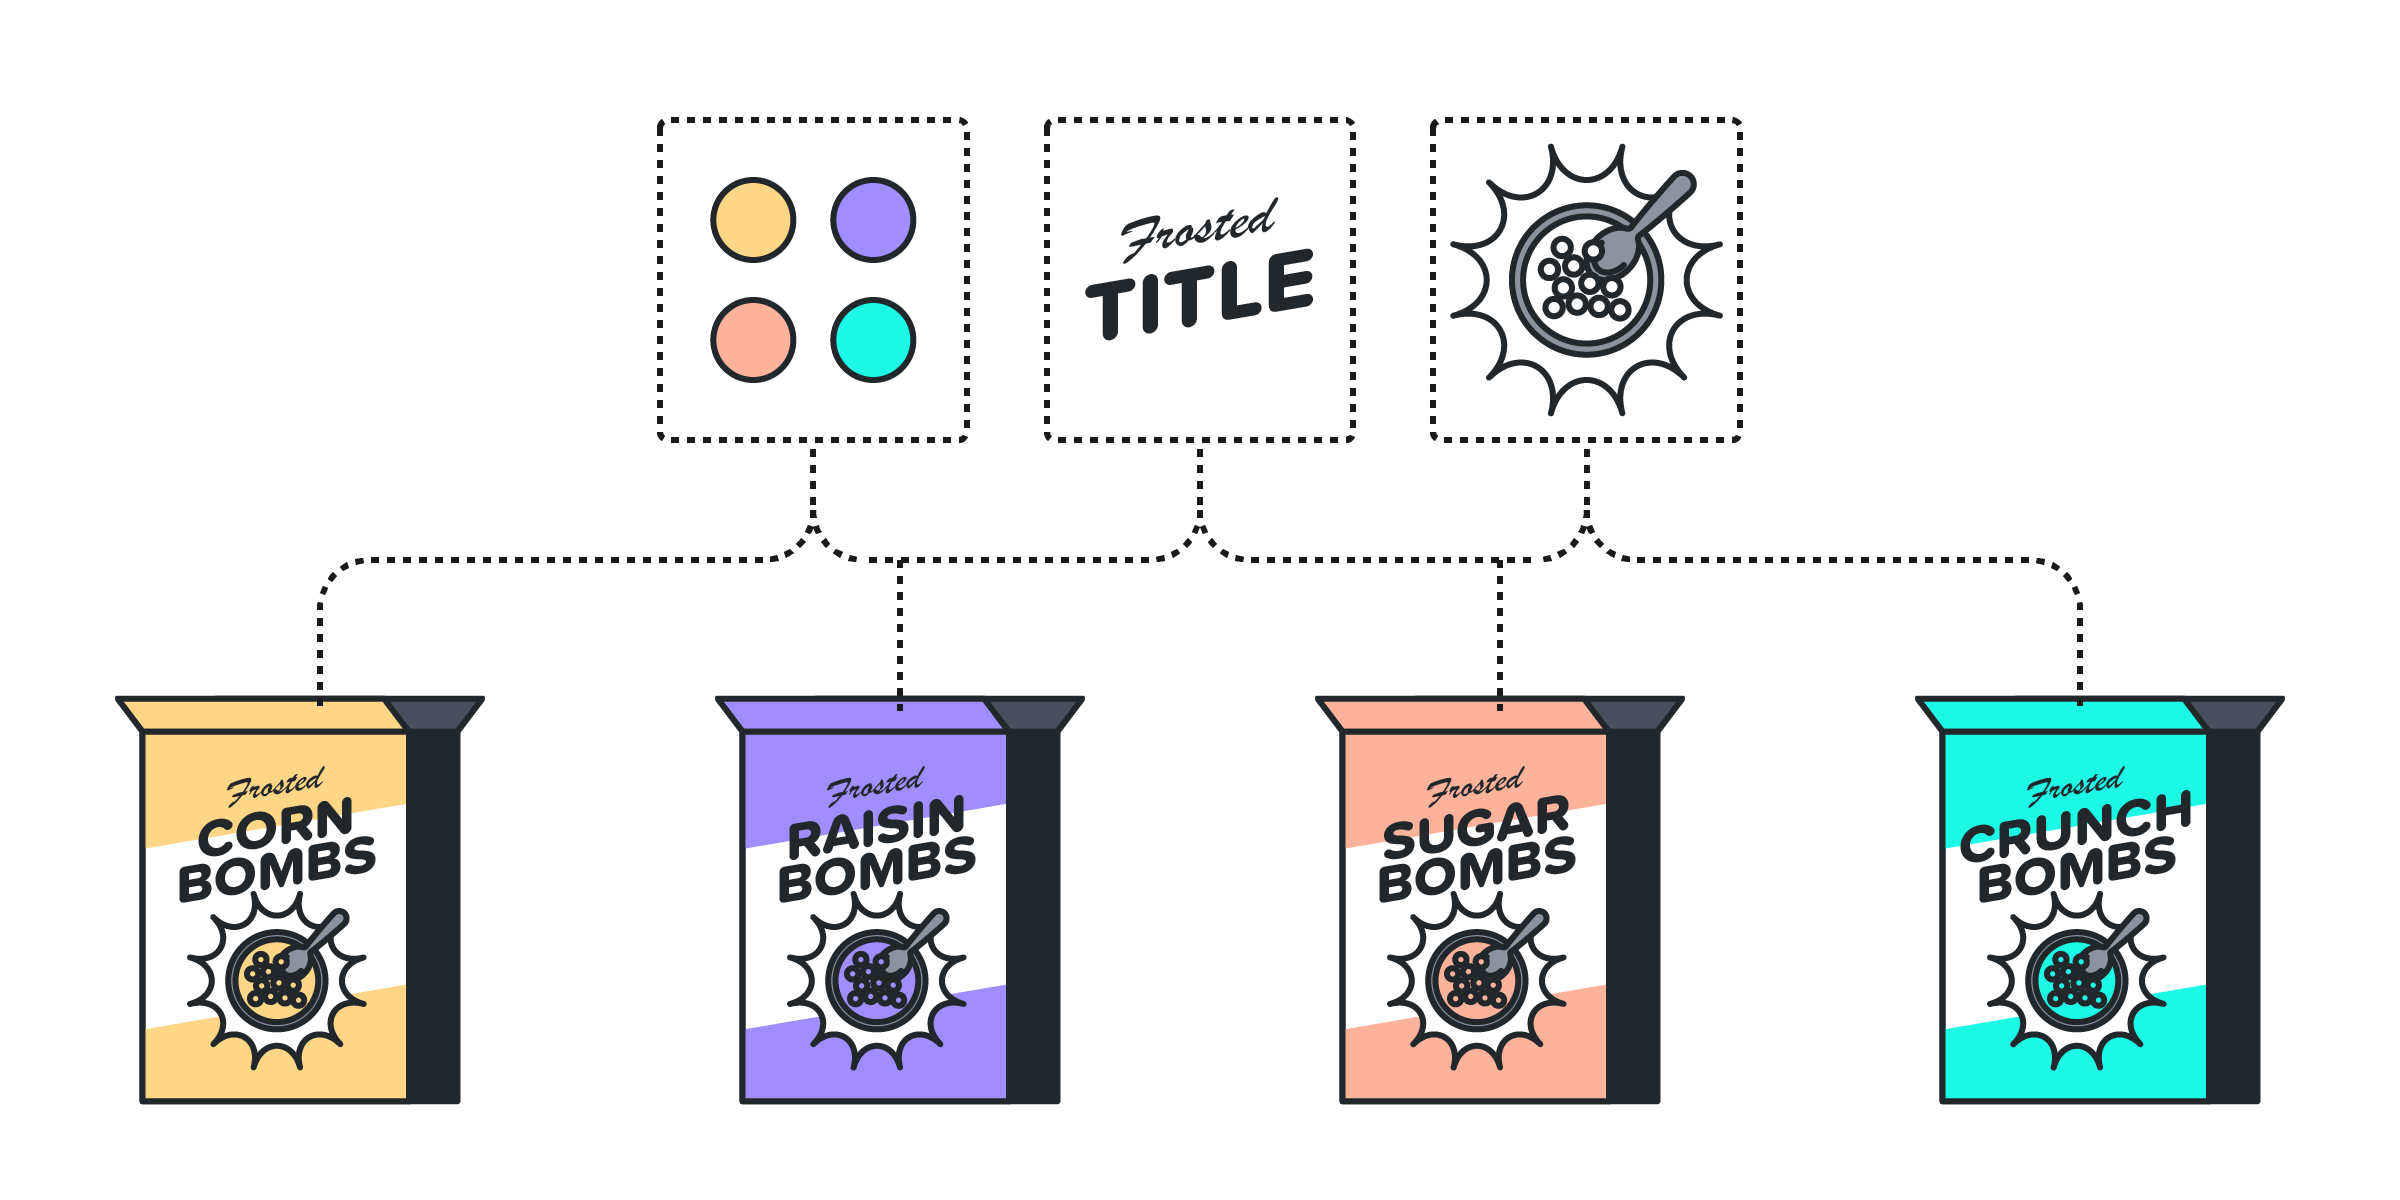 An illustration showing abstract pieces of cereal box art being used in four distinct physical cereal boxes.